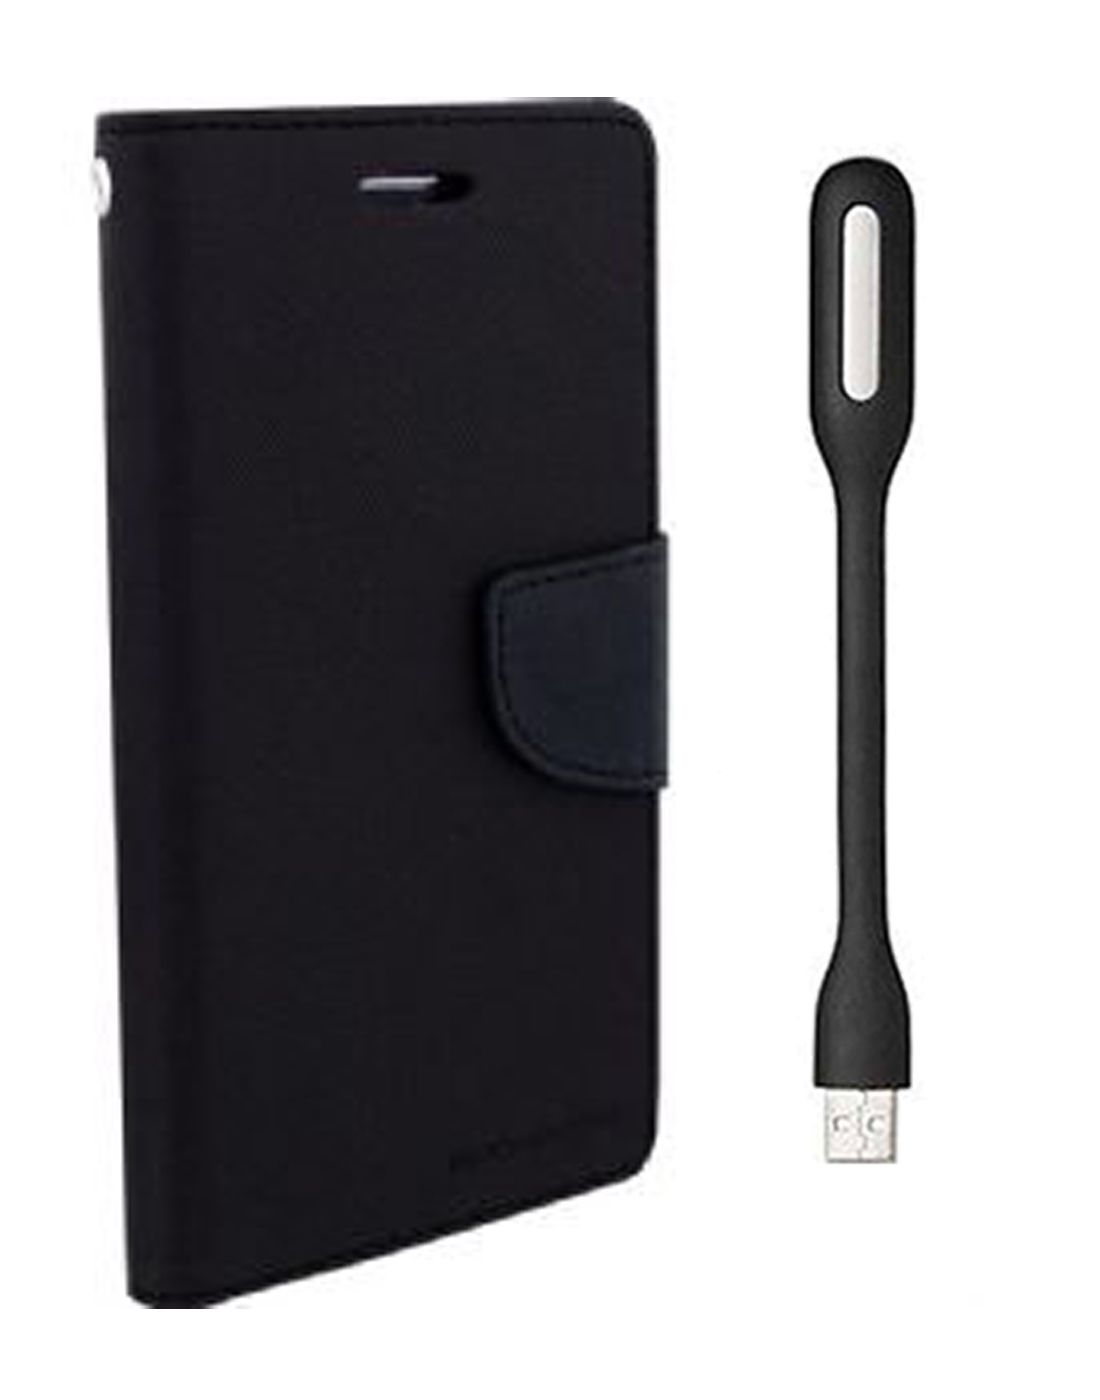 Wallet Flip Case Back Cover For Micromax A210 -(Black) + Flexible Mini LED Stick Lamp Light By Style Crome